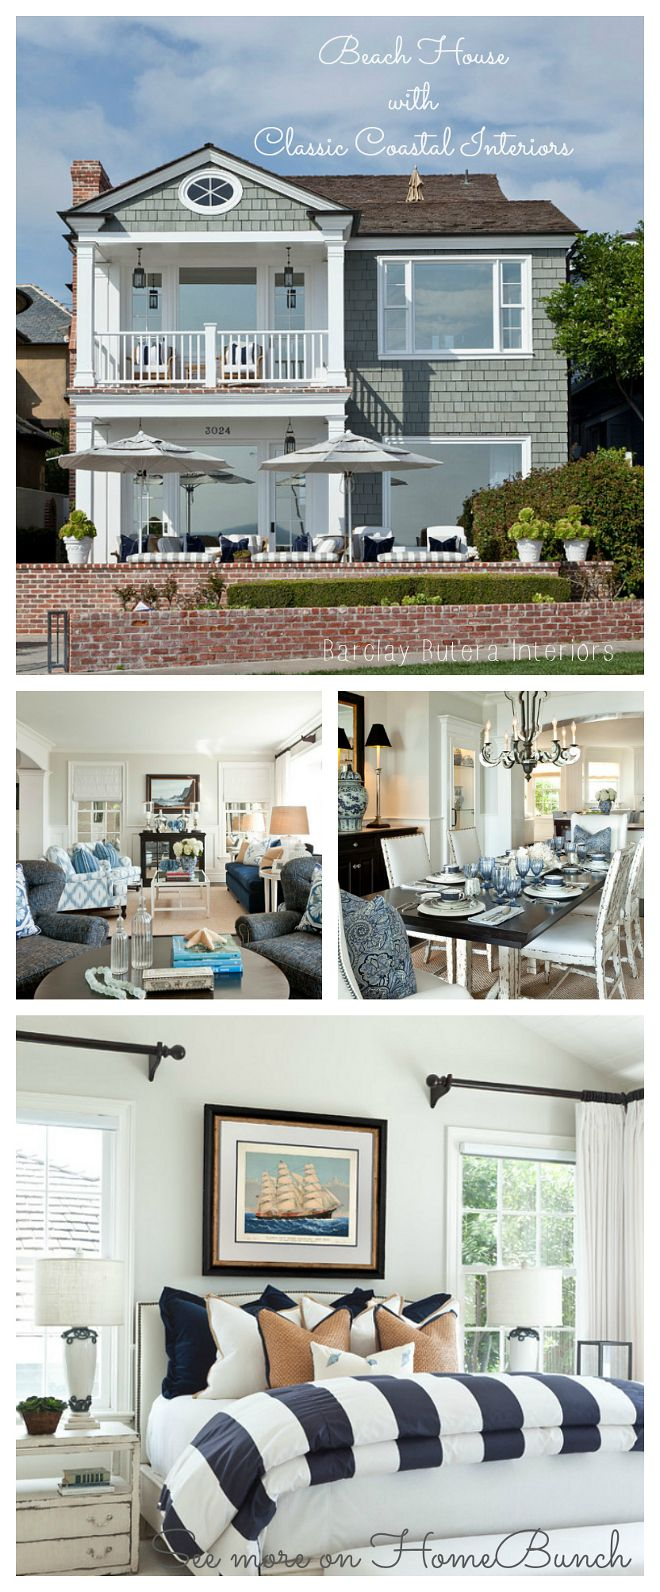 Beach House with Classic Coastal Interiors by Barclay Butera Interiors